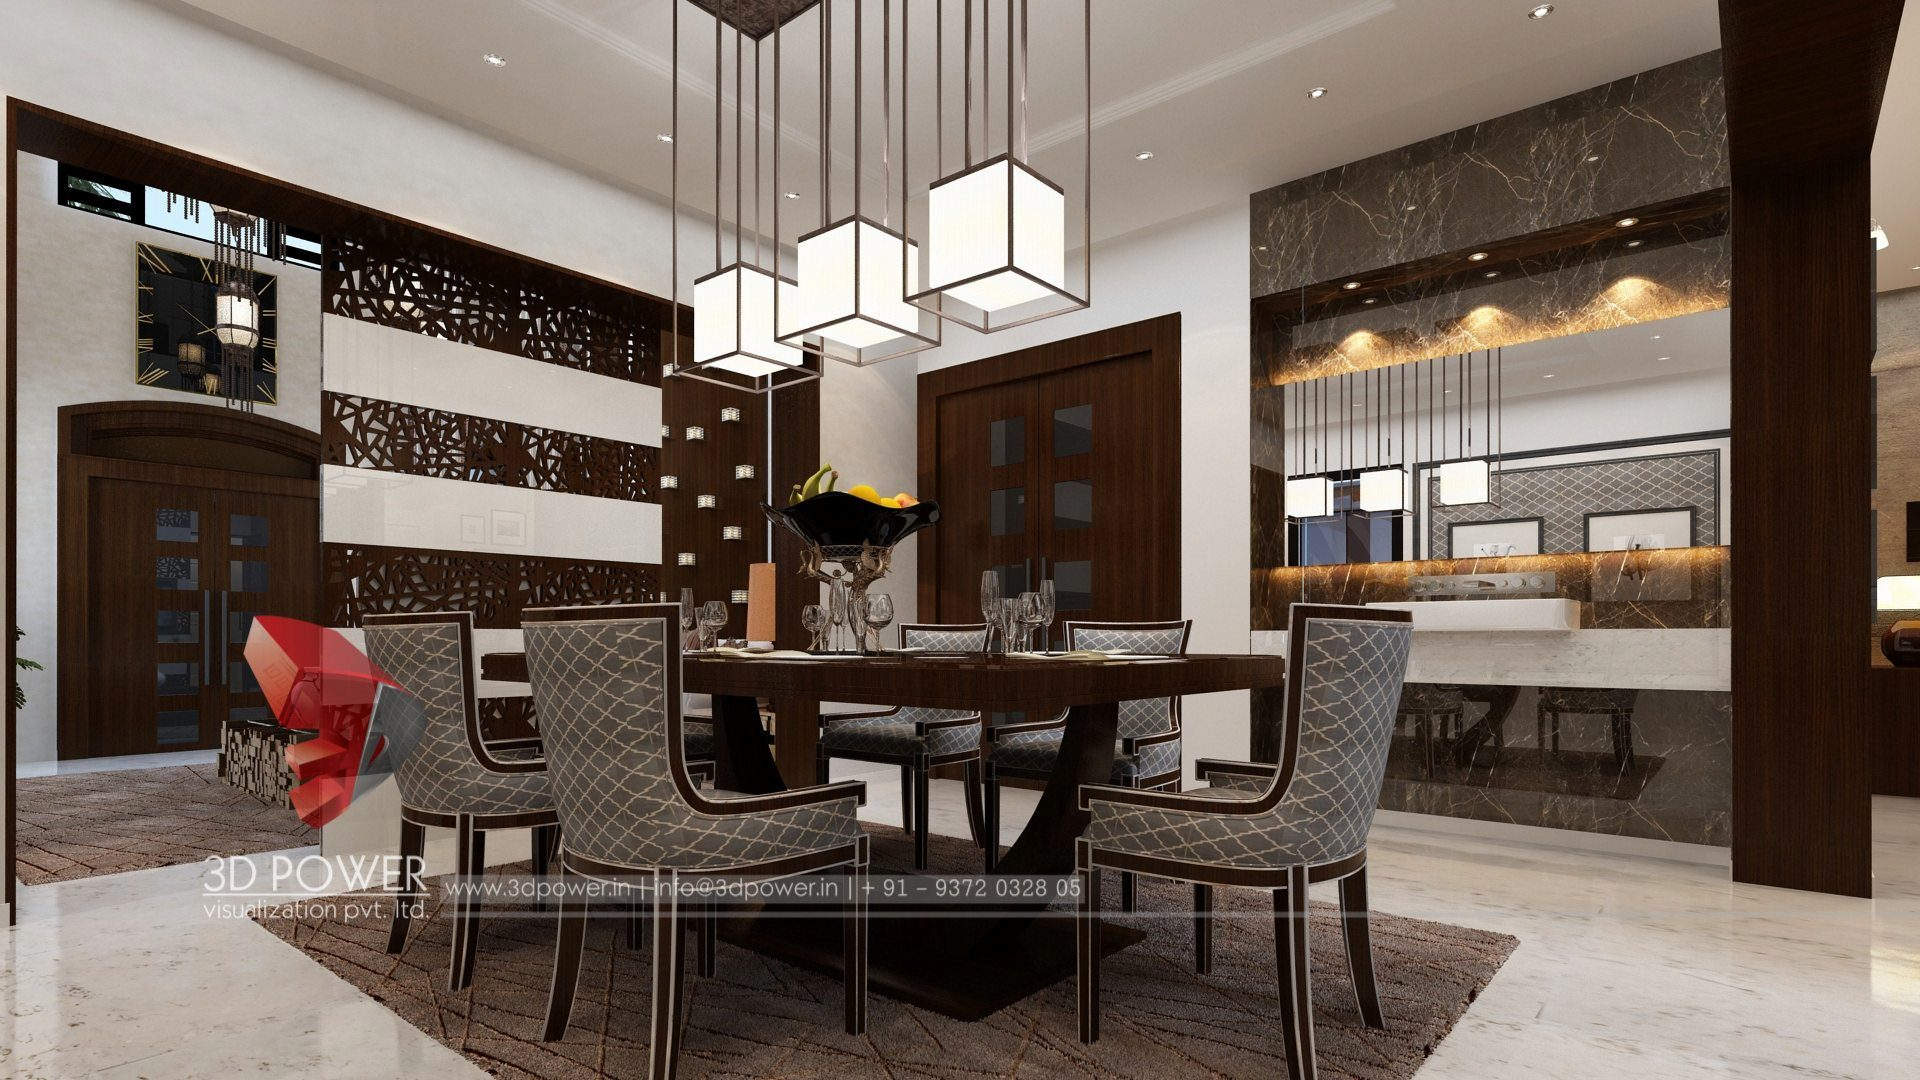 Furniture Cad Online 3d Interior Design & Rendering Services | Bungalow & Home